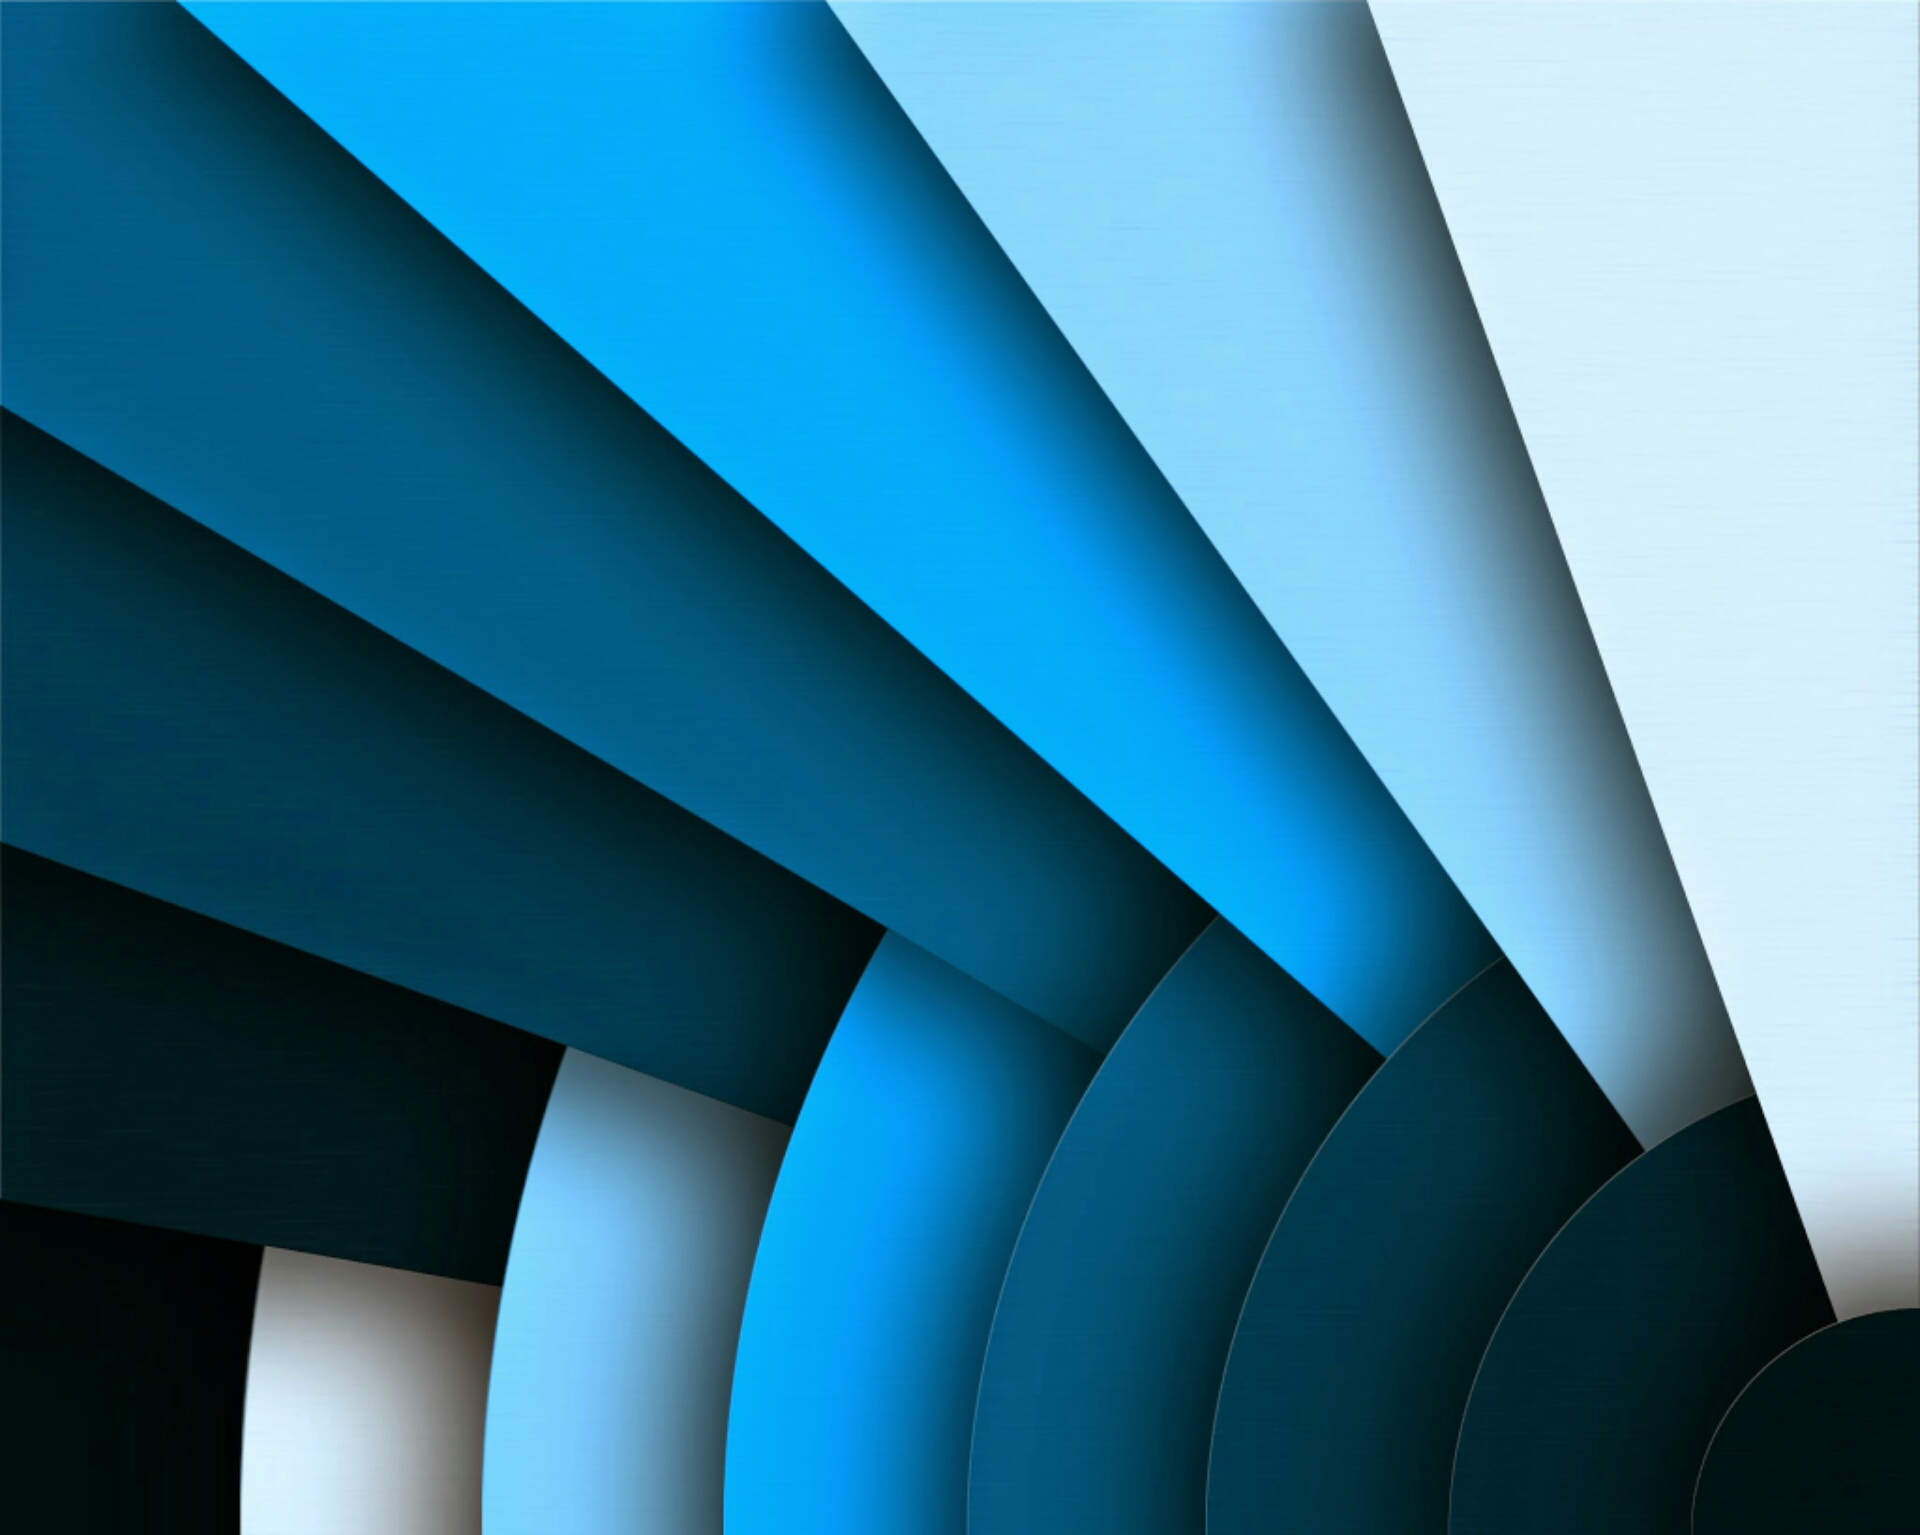 Download 141 Wallpapers Inspired From Material Design For